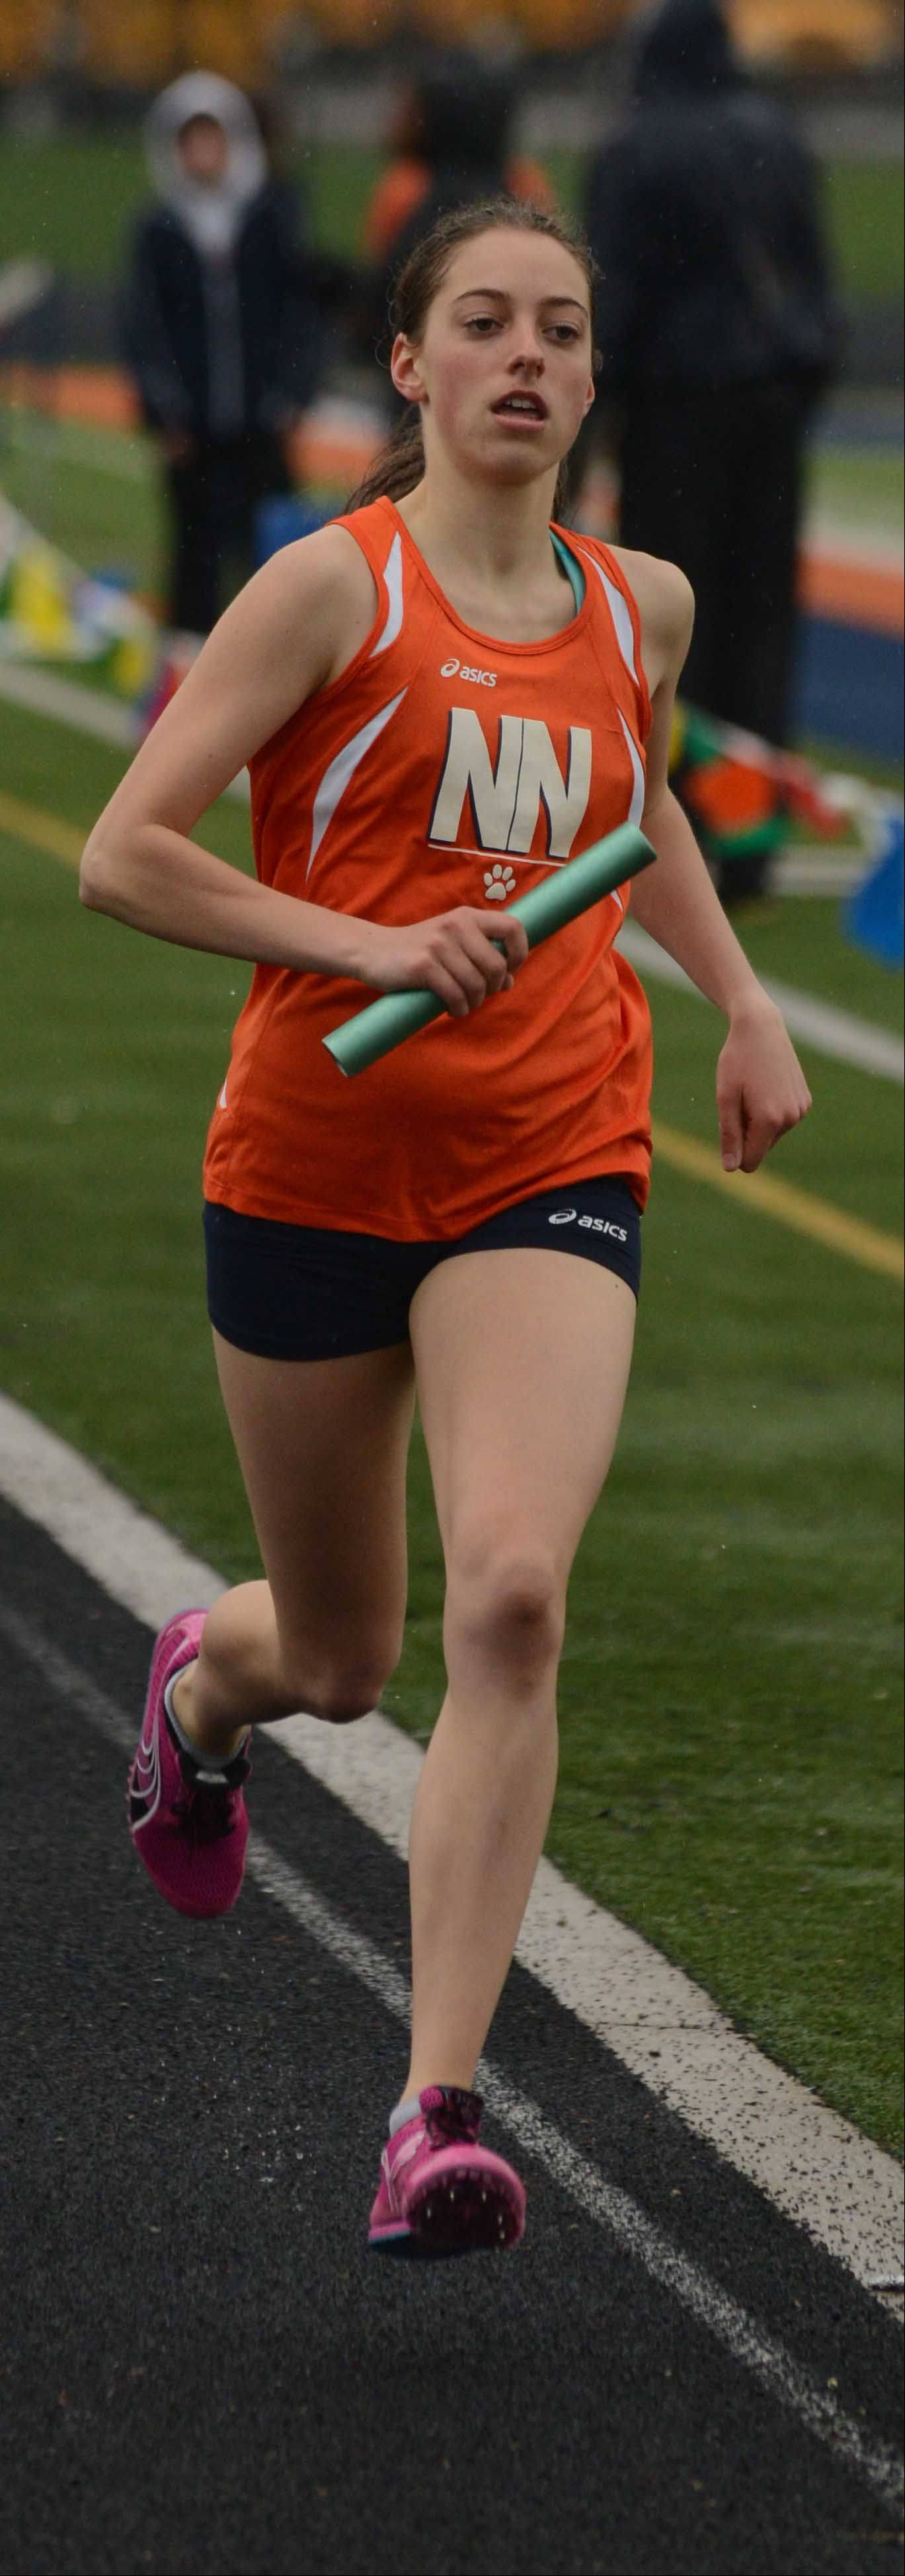 Allison Trezona of Naperville North took part in the 4x800 during the DuPage Valley Conference girls track finals Thursday at Naperville North.